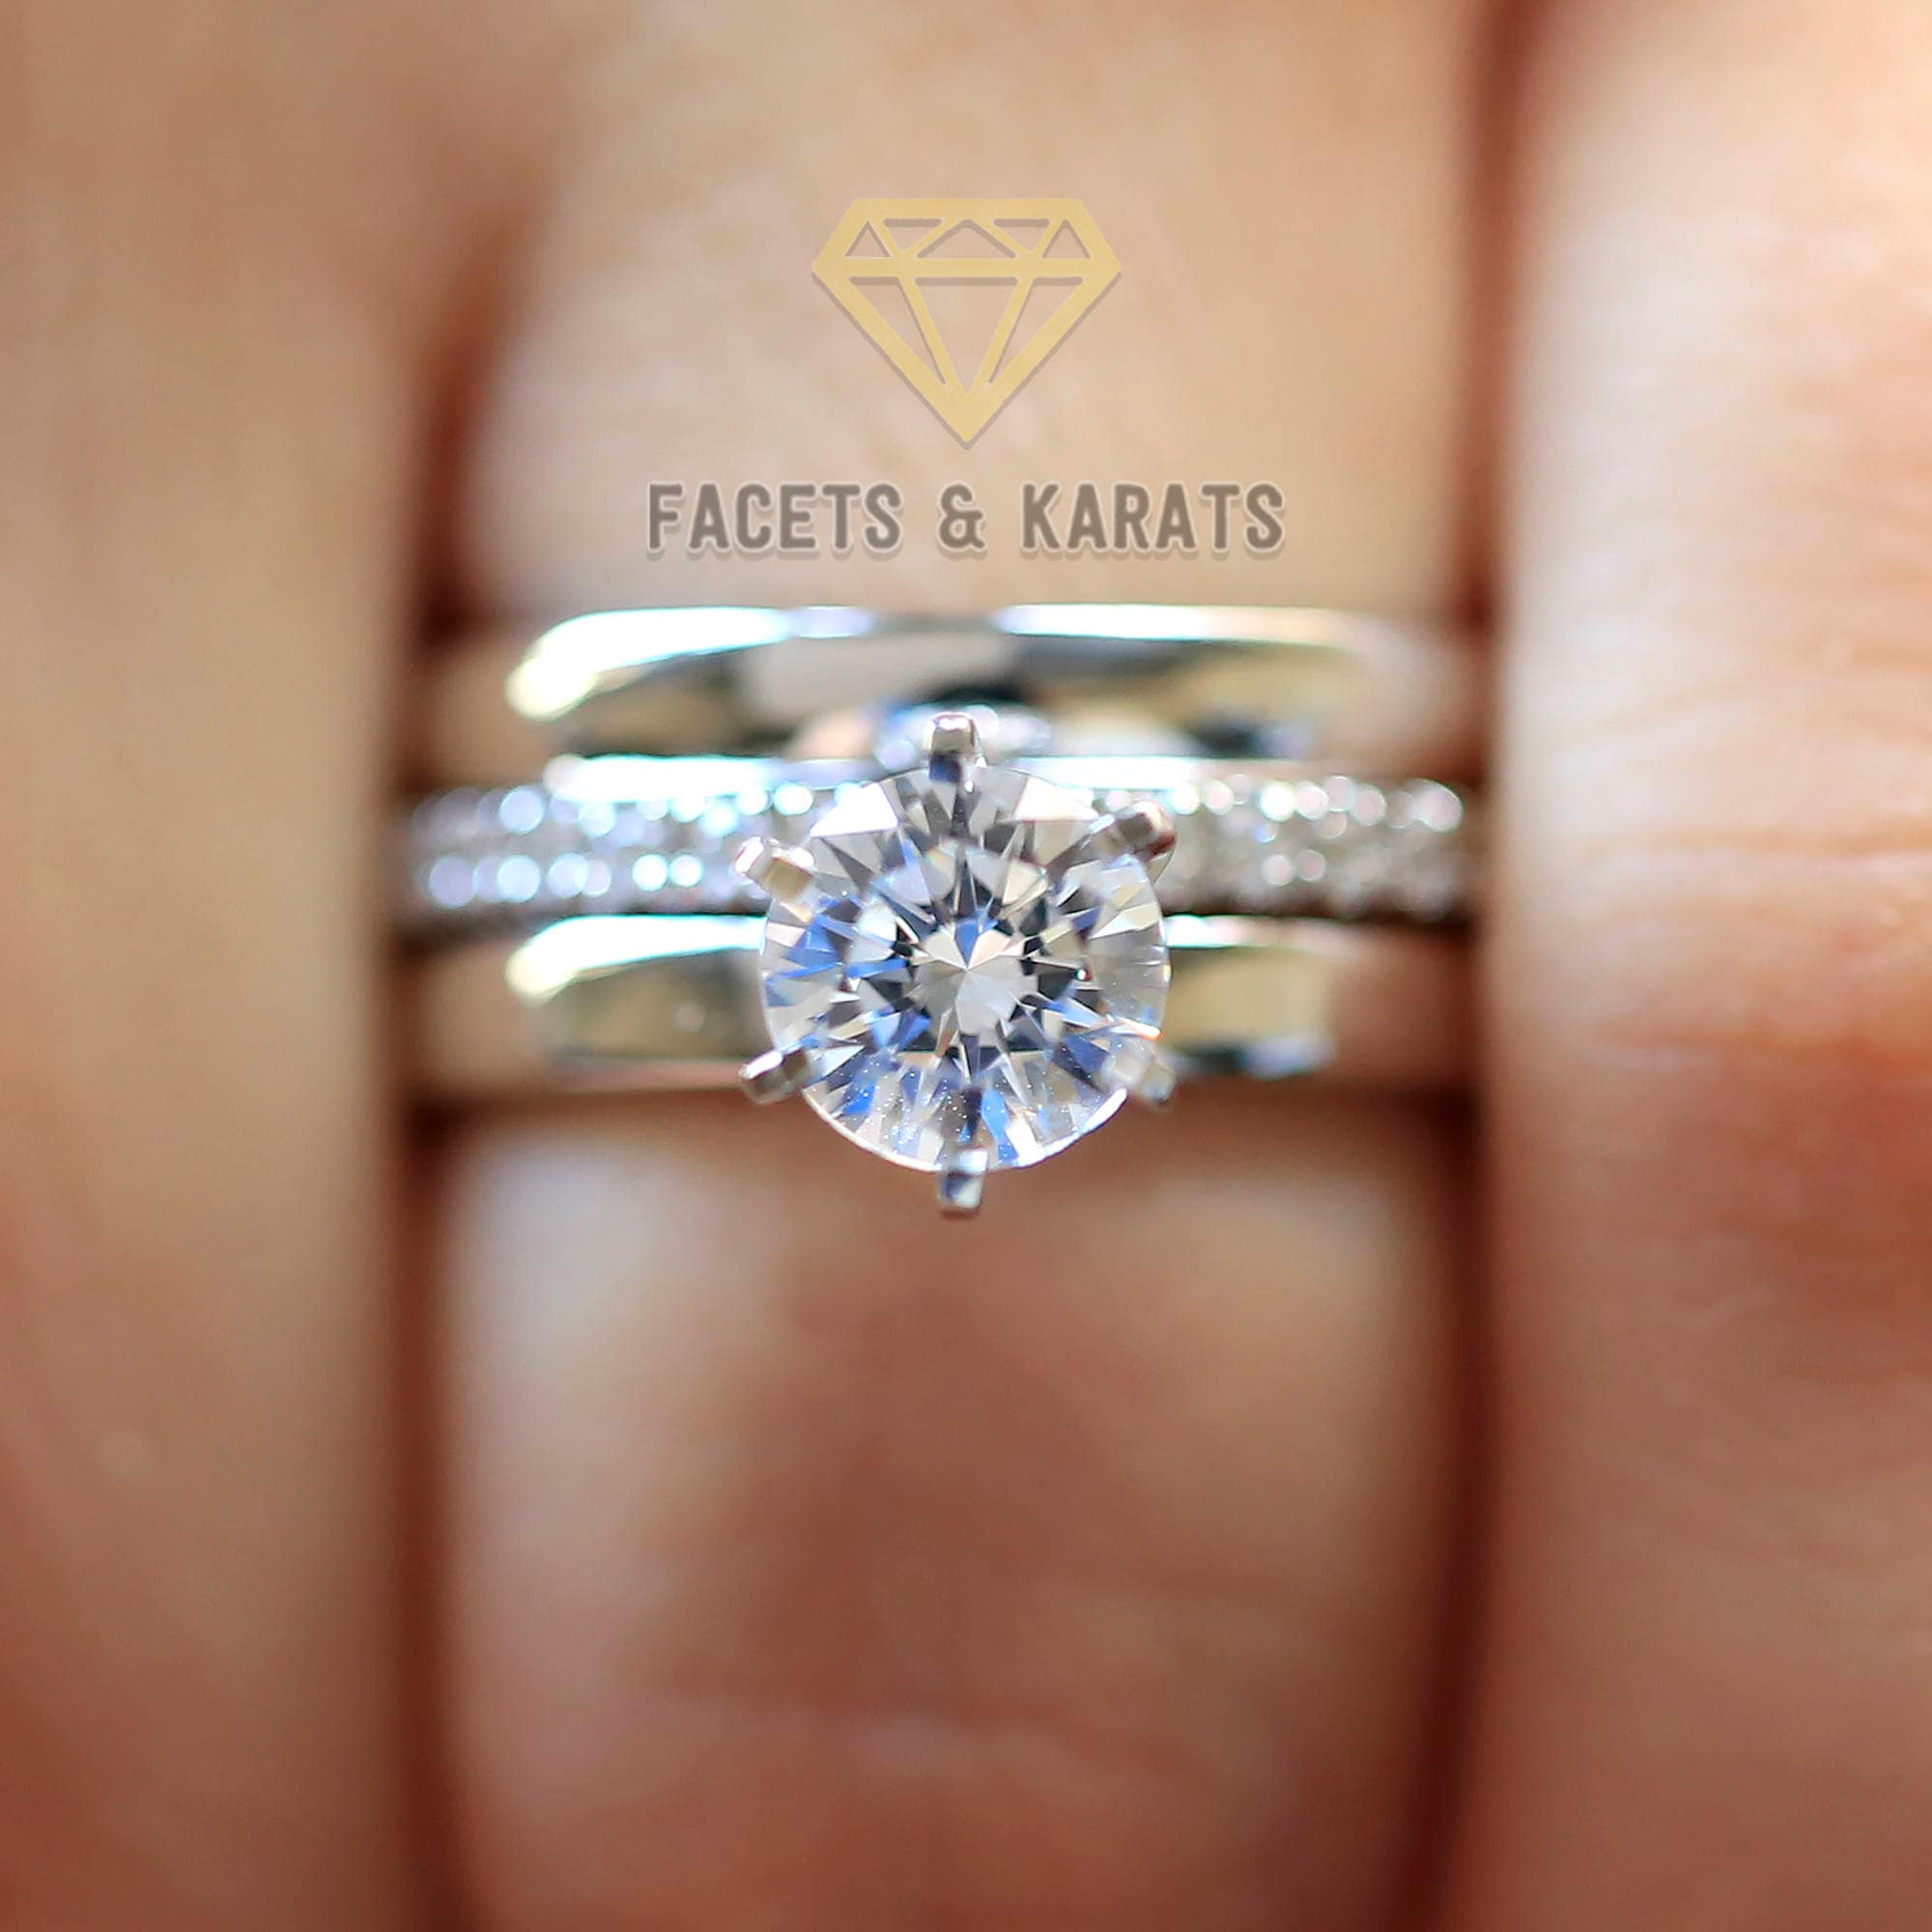 Engagement & Wedding 14k Solid Yellow Gold Solitaire Engagement Wedding Promise Ring 1.25 Ct Diamond Strong Packing Jewelry & Watches